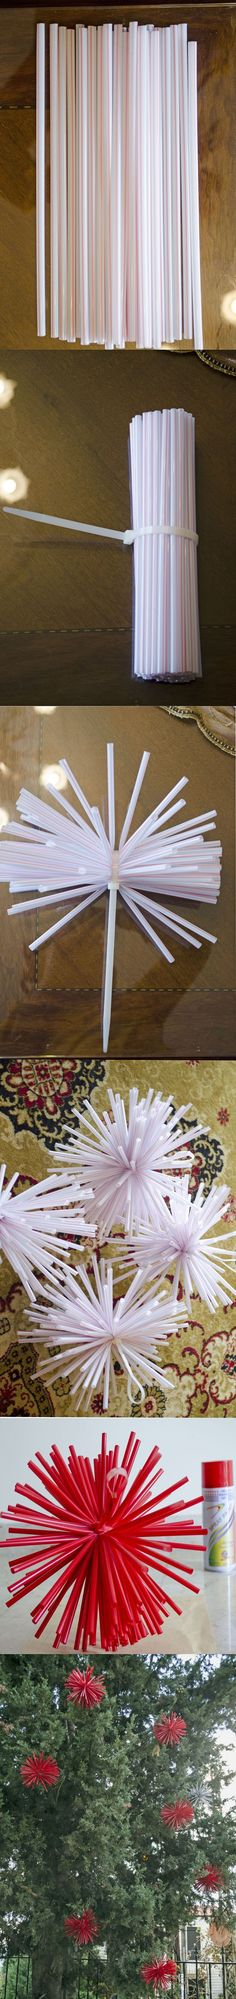 DIY Christmas Decorations... using plastic straws